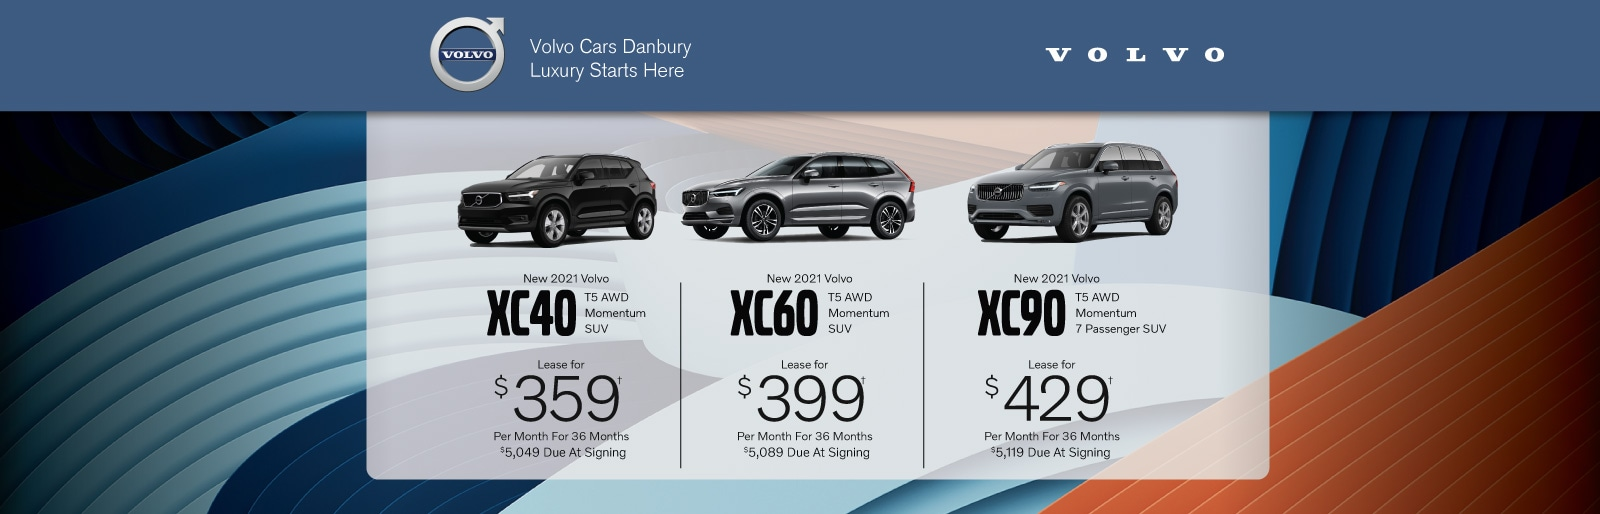 Volvo Lease Deal Image